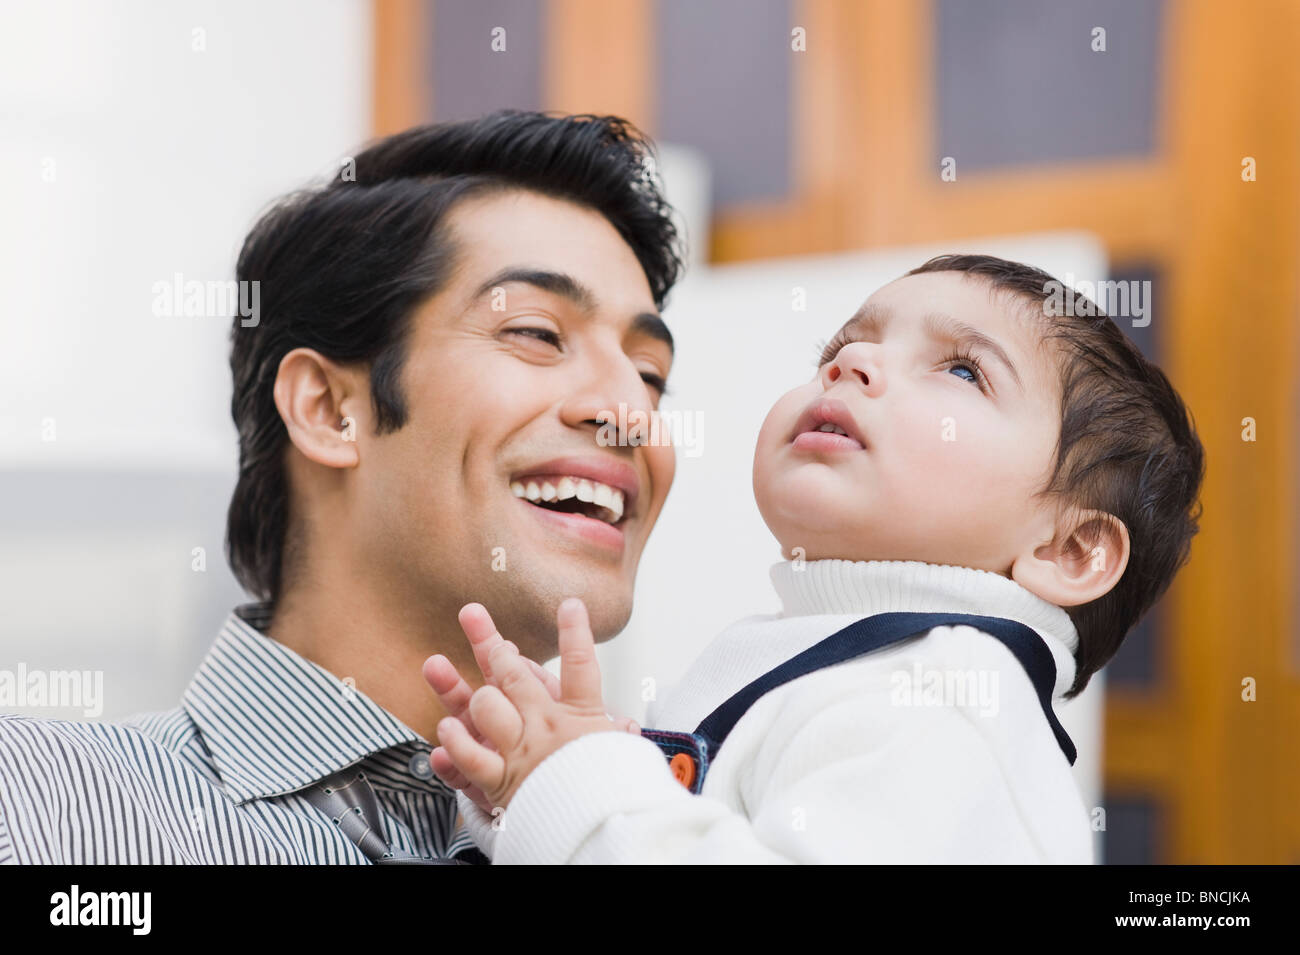 Man carrying his son and smiling - Stock Image